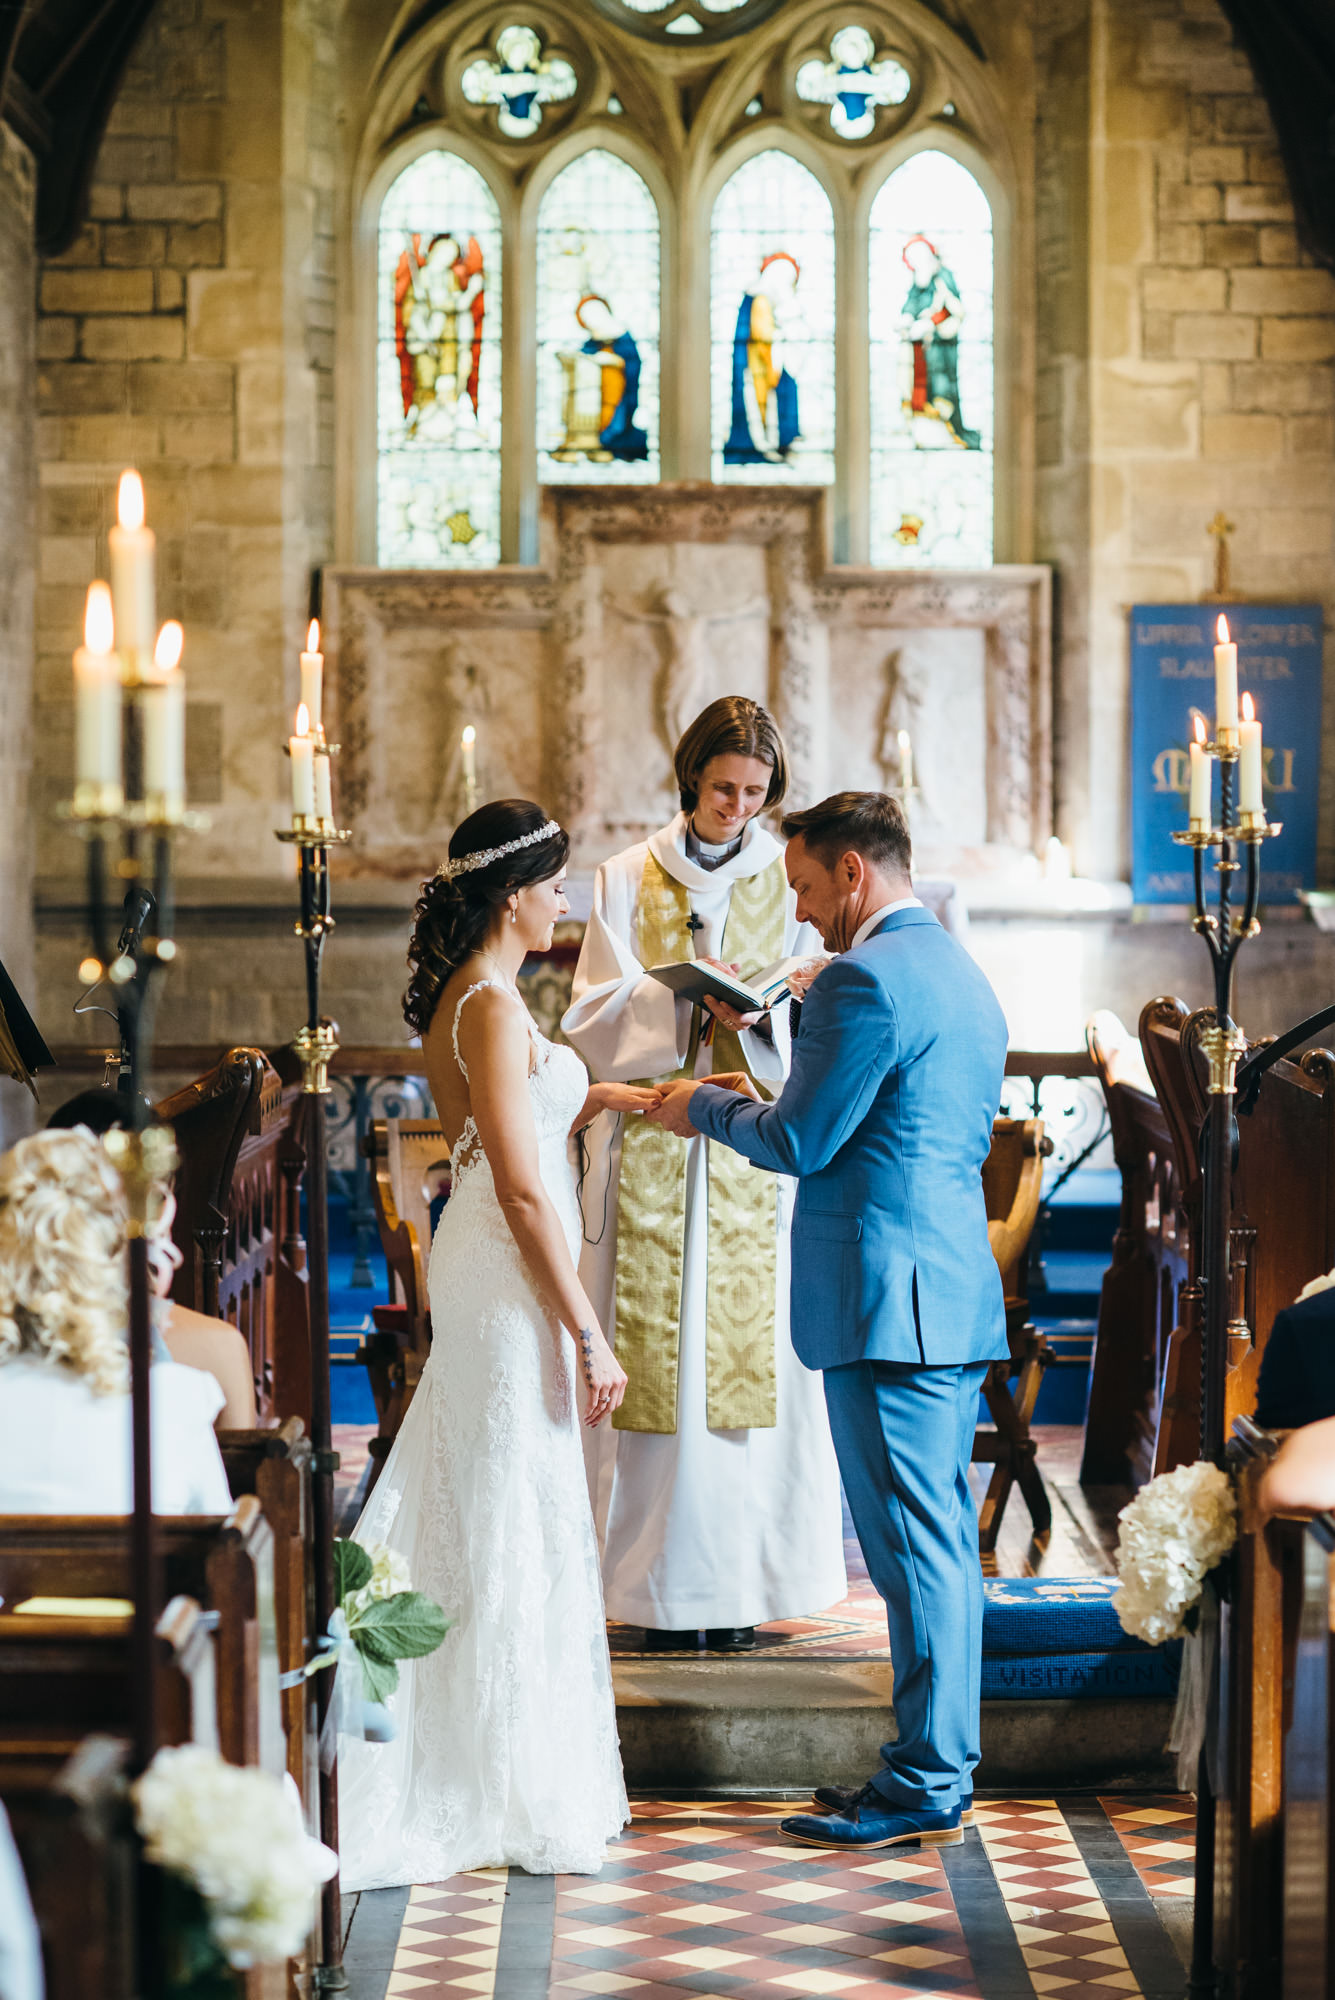 Wedding photographer St Marys Church, Lower Slaughter